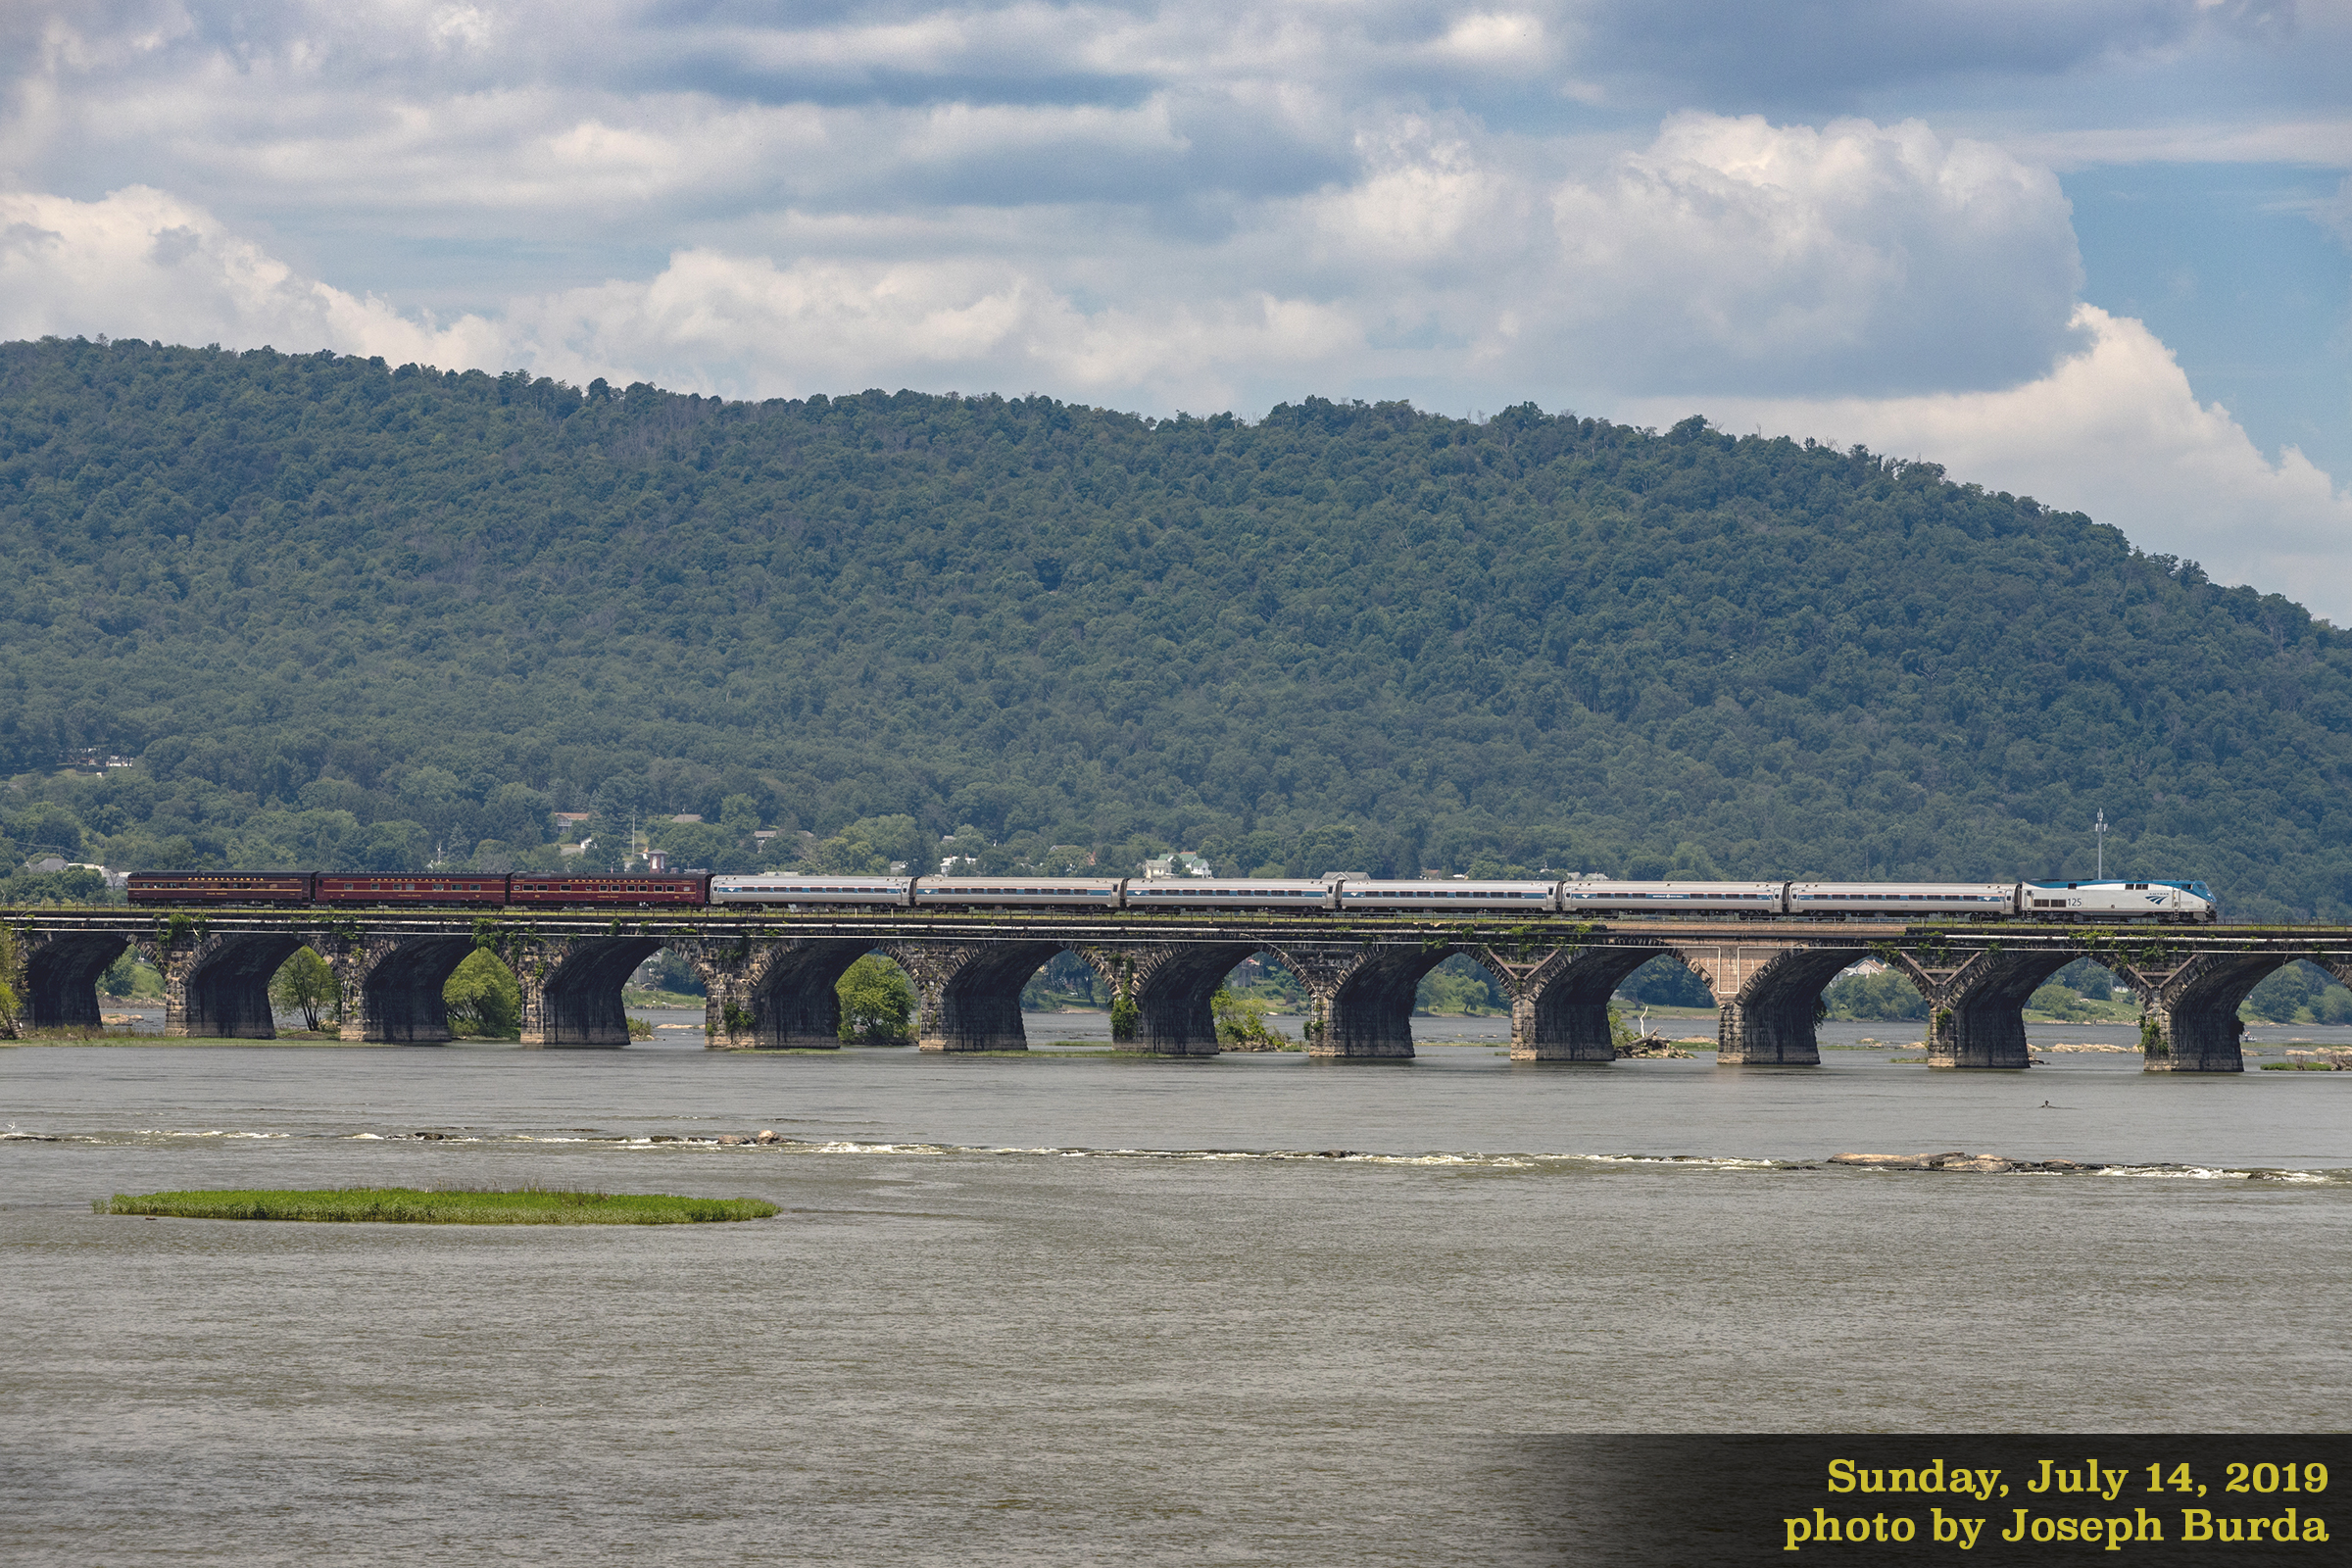 2019-07-14_AMTK_Pennsylvanian_RockvilleBridge_JosephBurda_mark.jpg